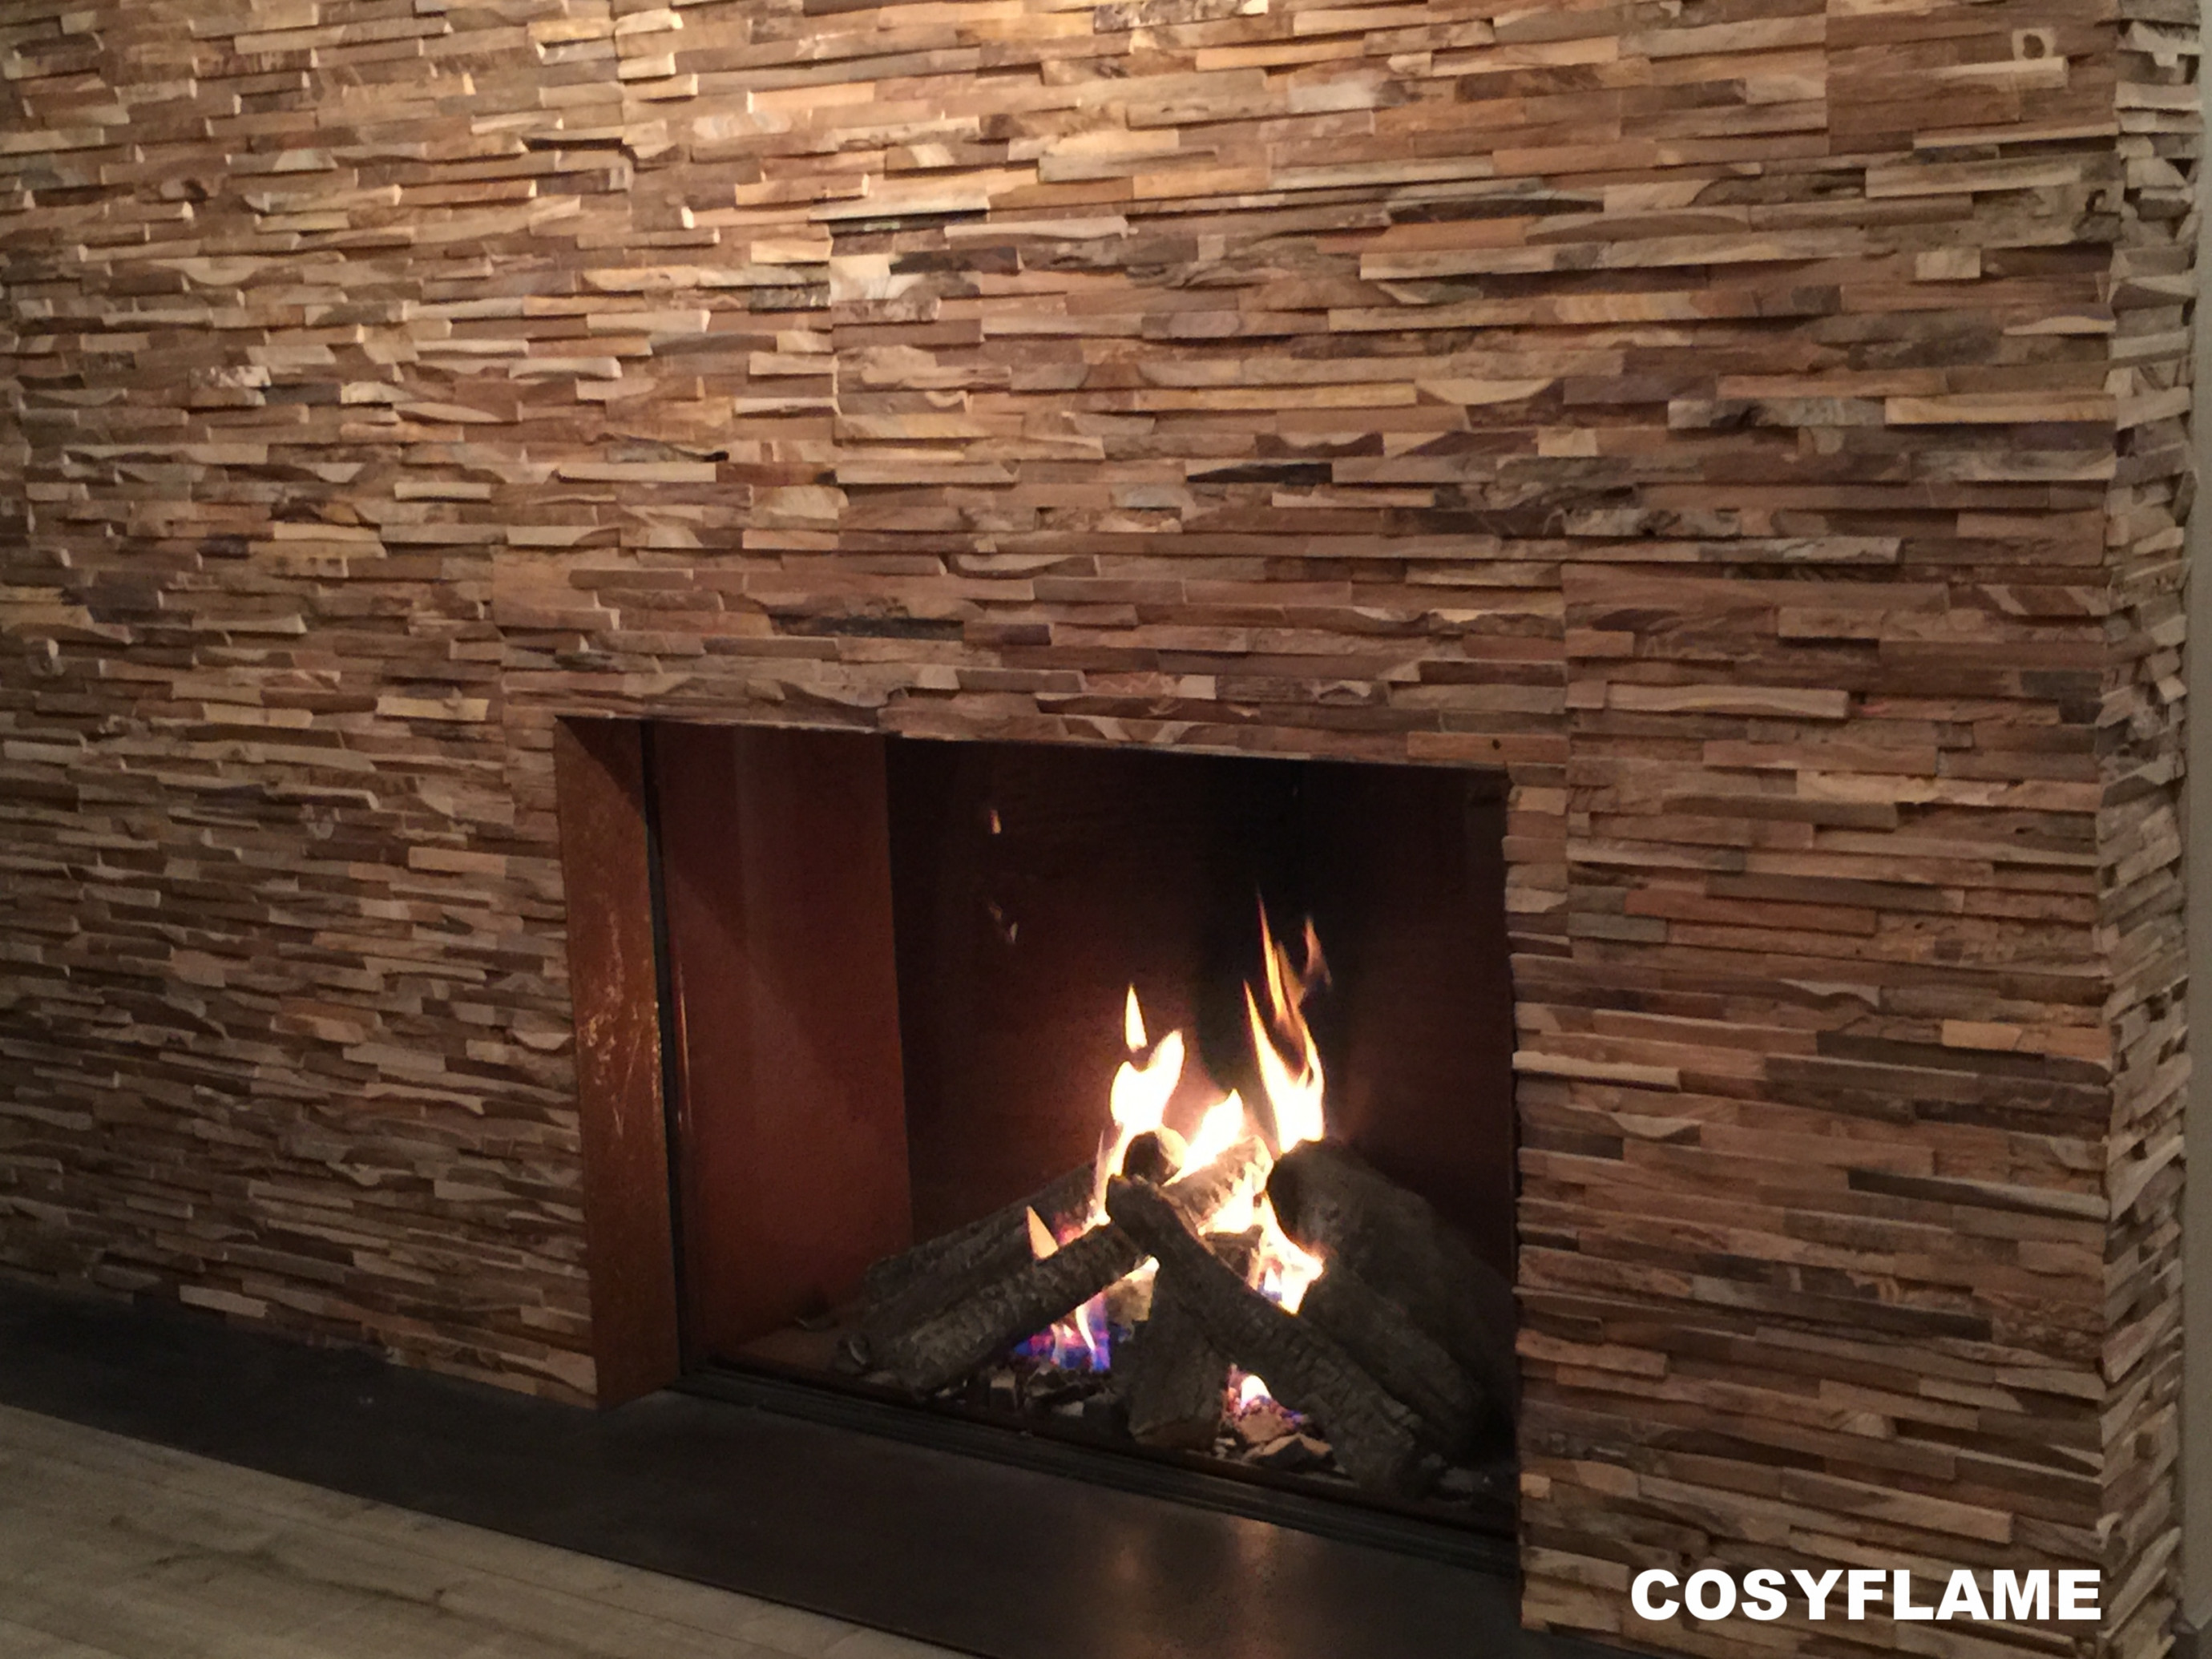 Cosyflame-Corten-file1-9